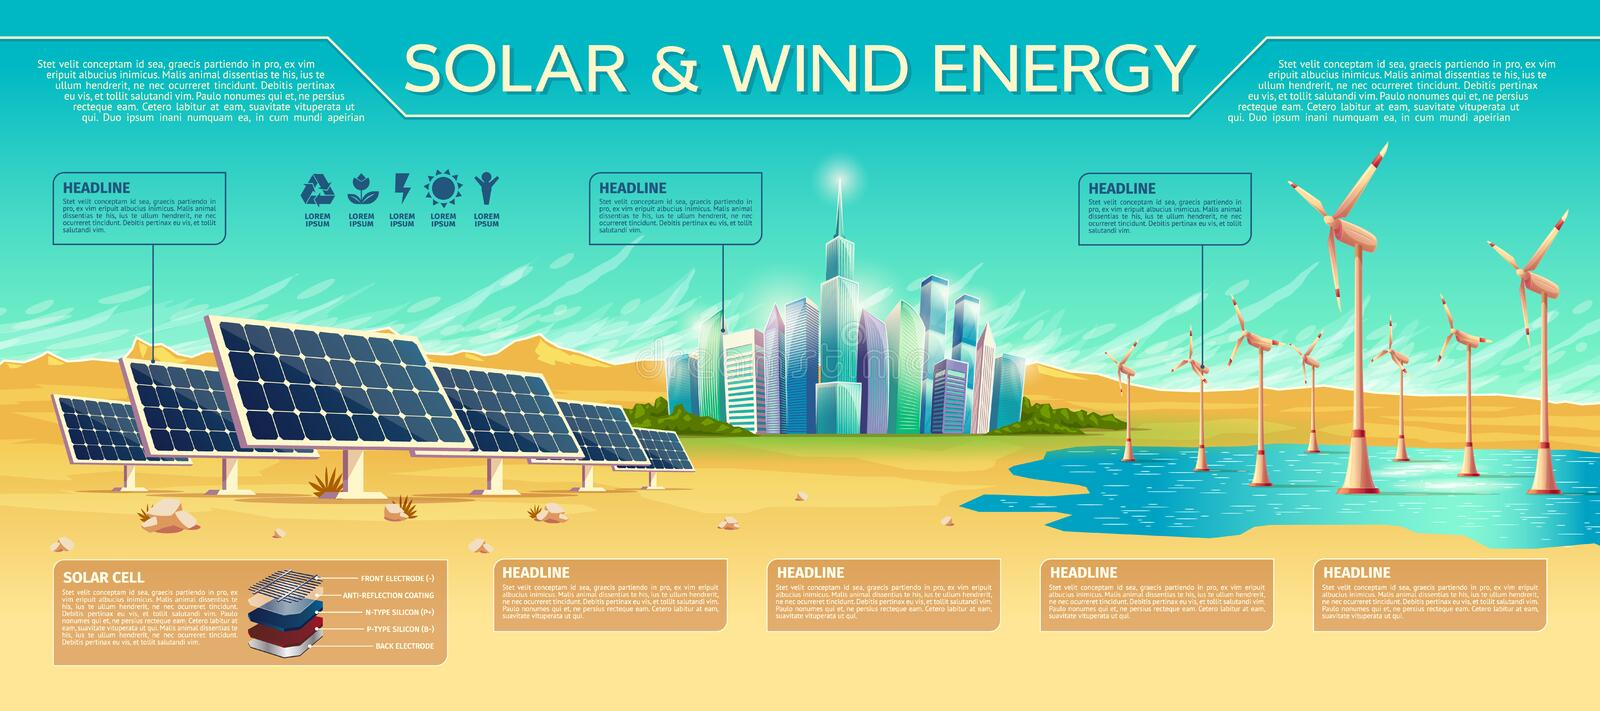 Solar and wind energy vector concept illustration royalty free illustration